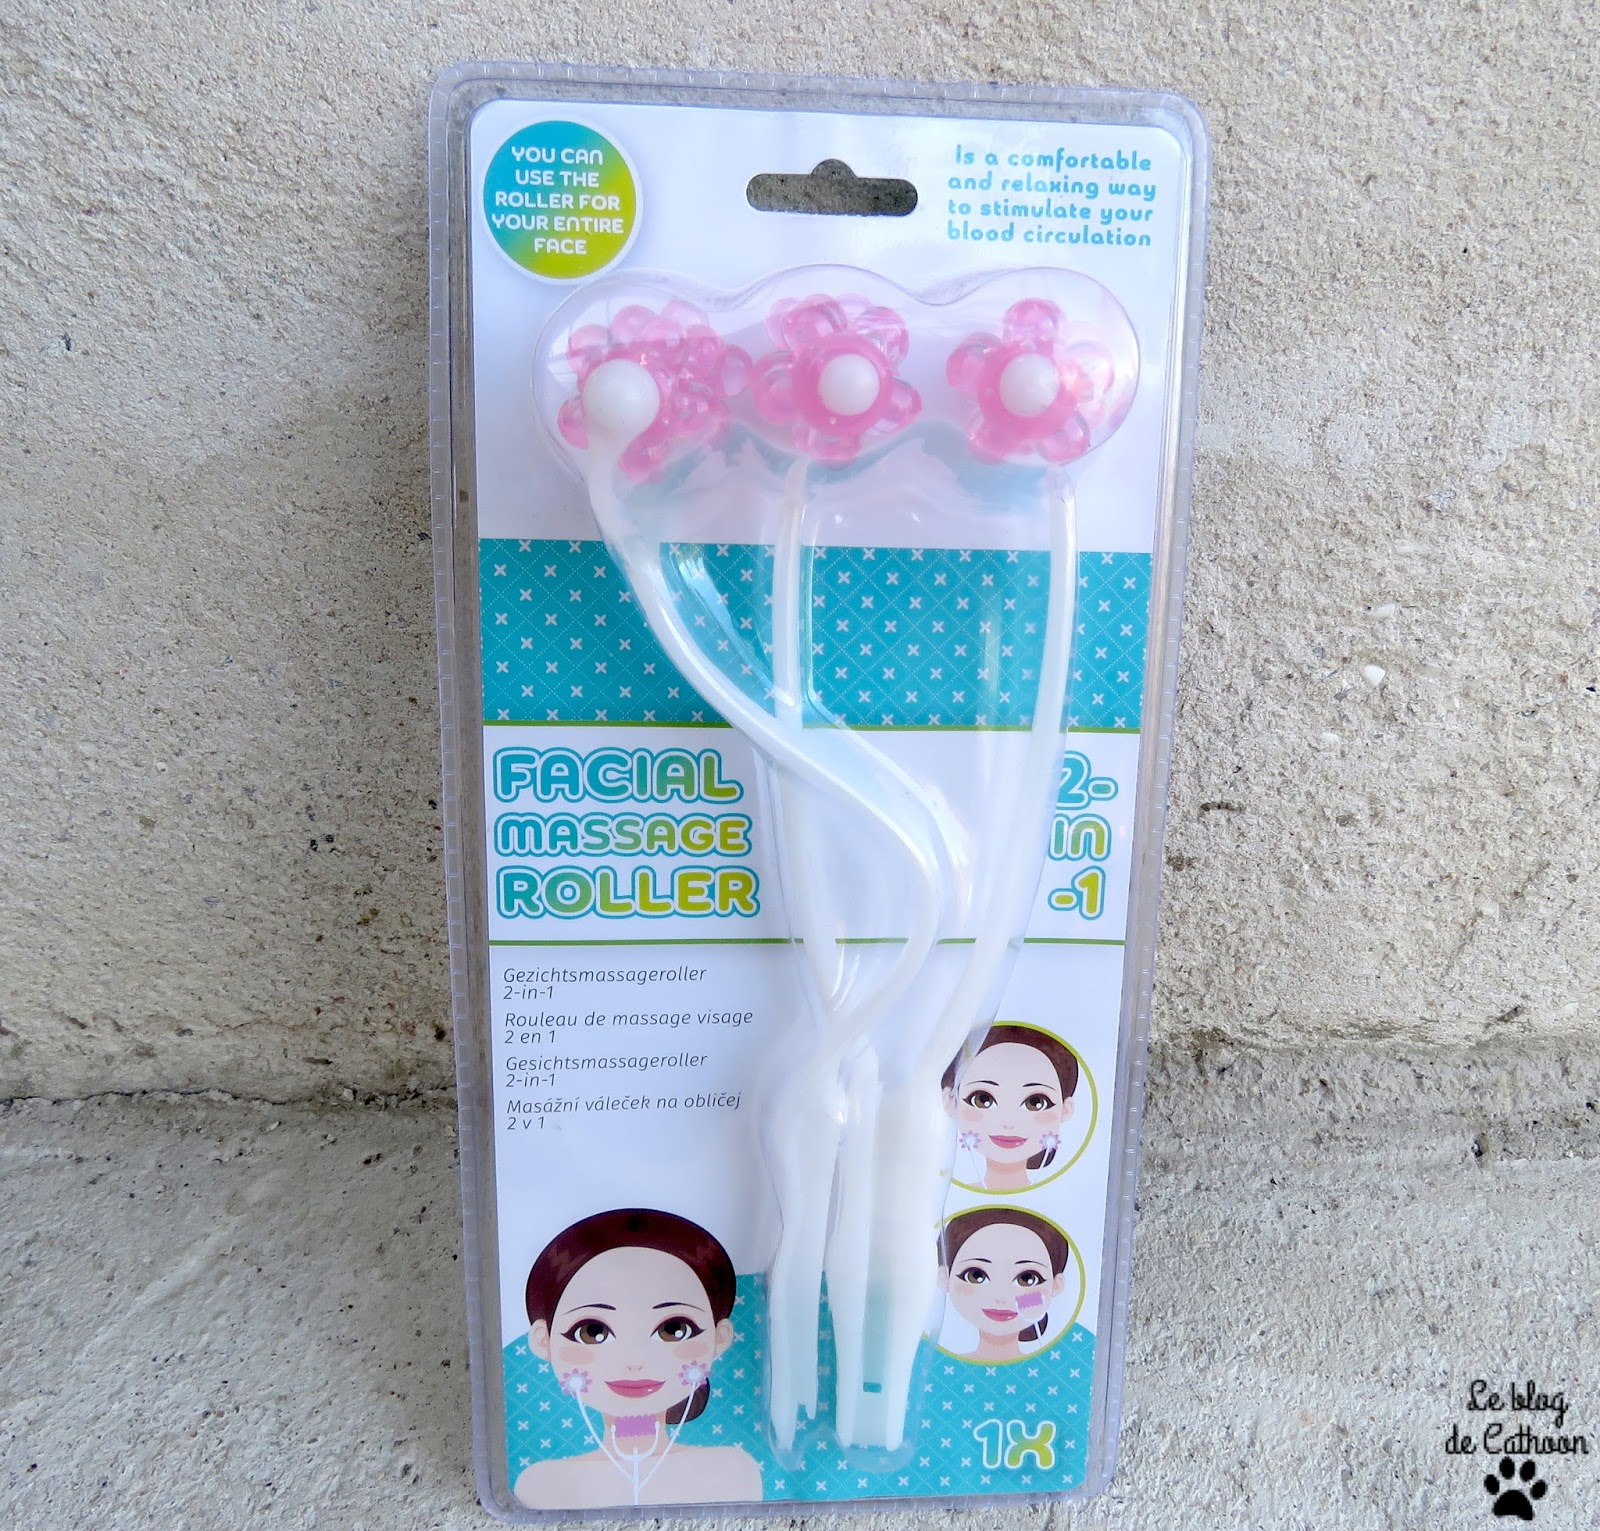 facial massage roller 2-in-1 Action